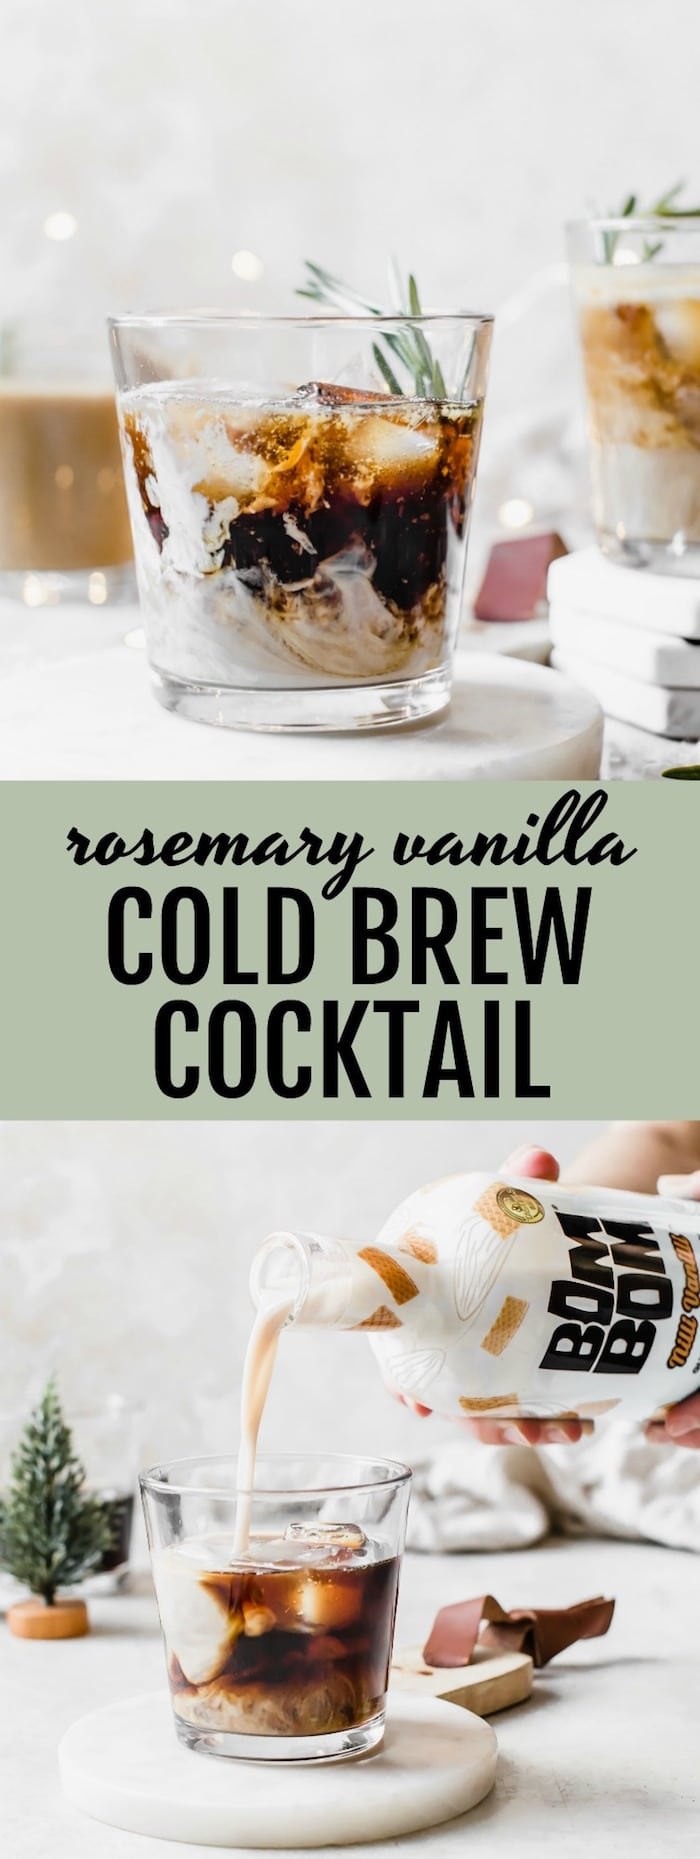 Rosemary Vanilla Cold Brew Cocktail - a rum-based cocktail made with cold brew, vanilla milk and rosemary syrup #vegan | thealmondeater.com